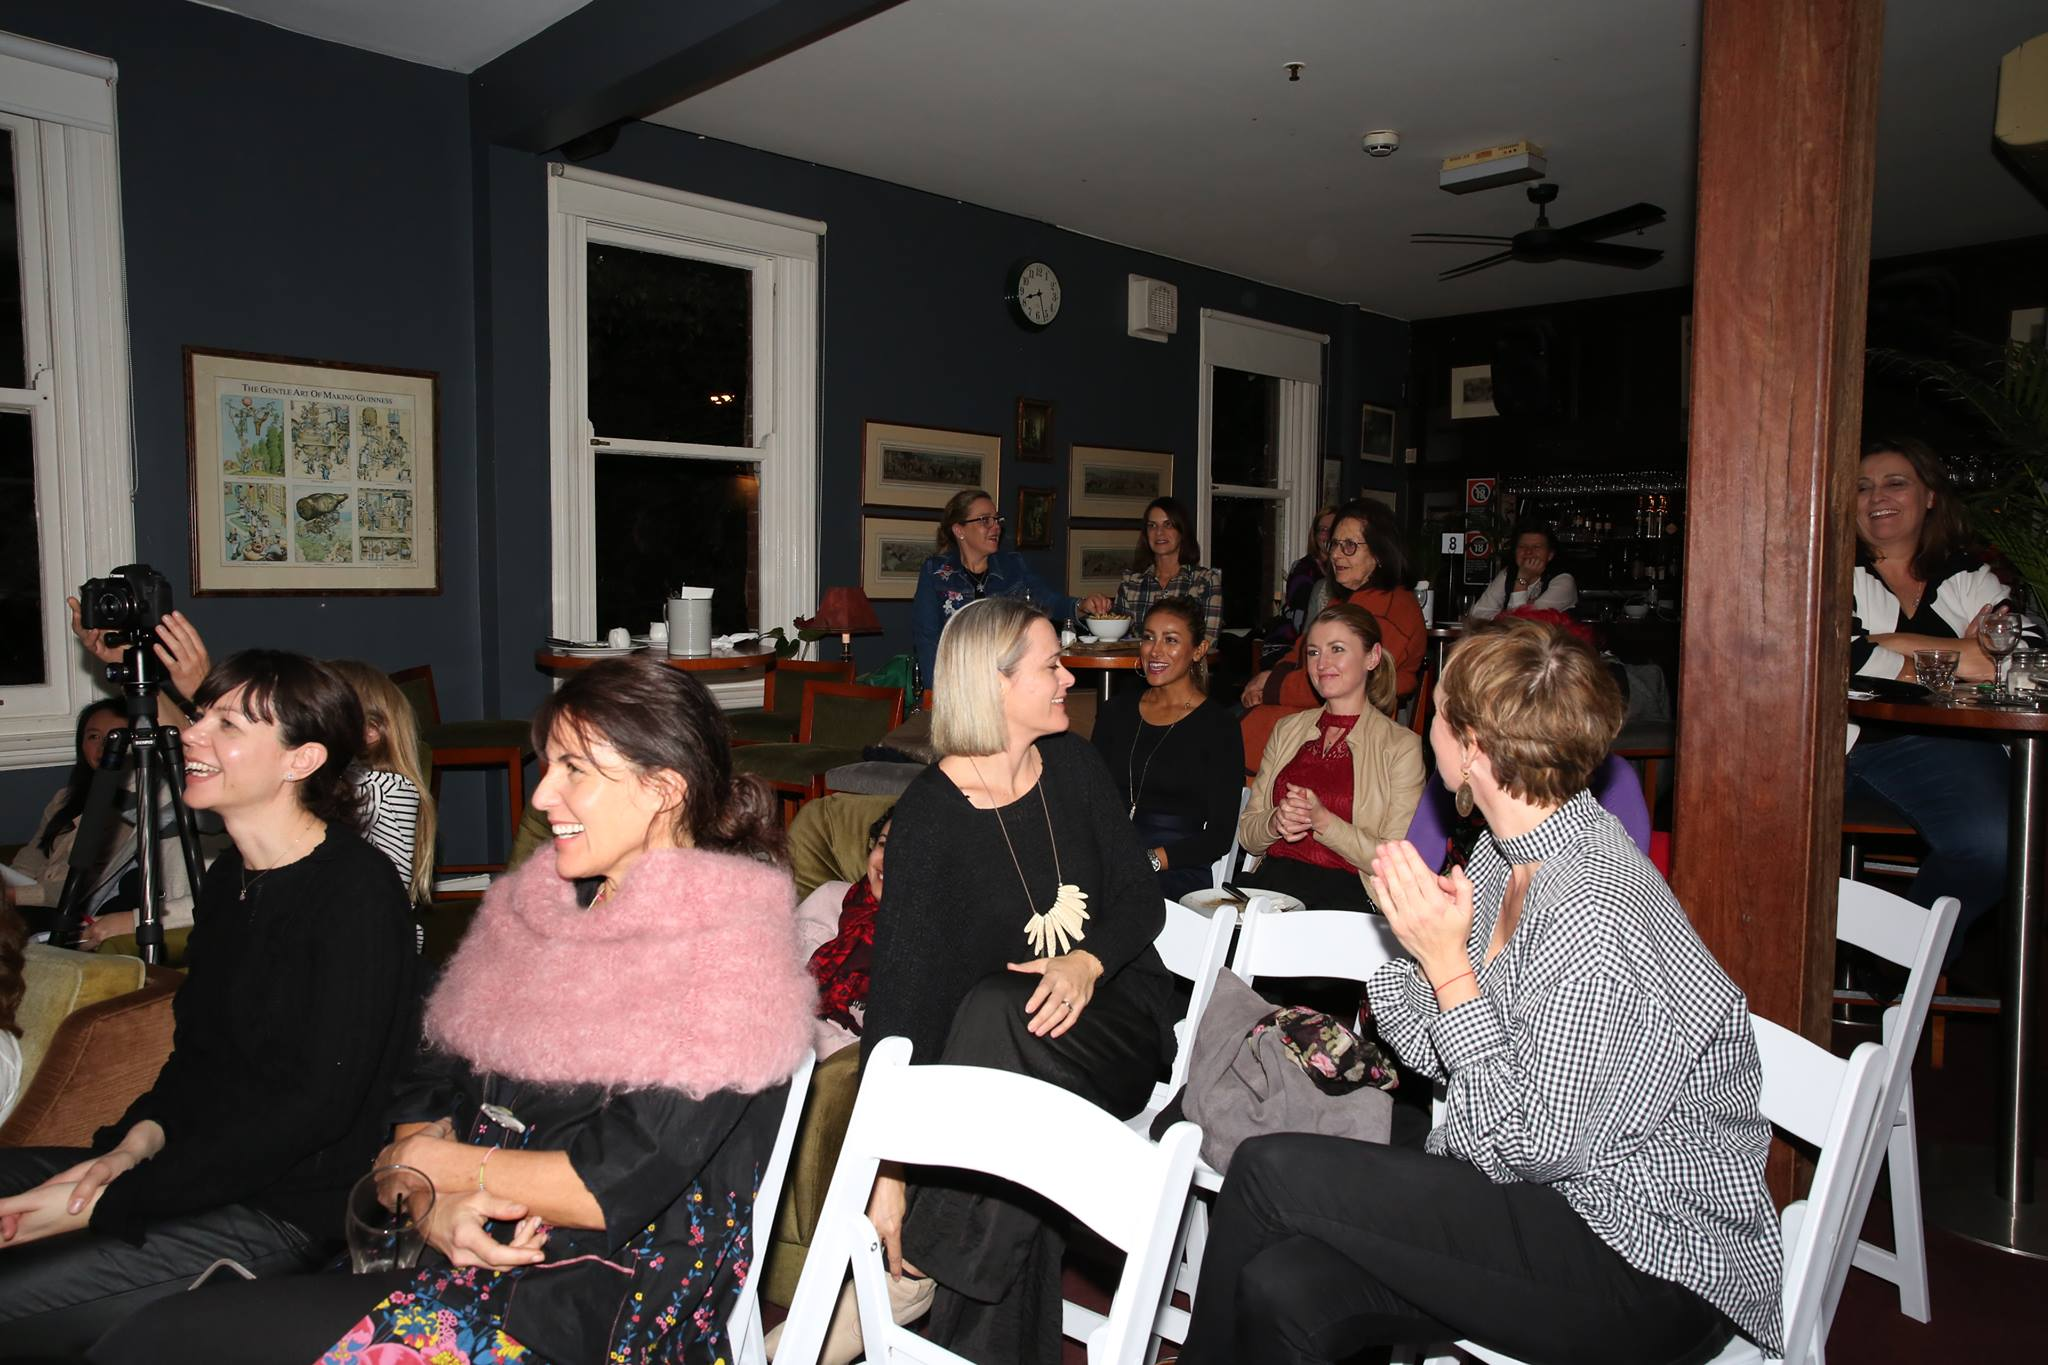 A roomful of creative mamas enjoying the story of our fabulous featured evening presenter.